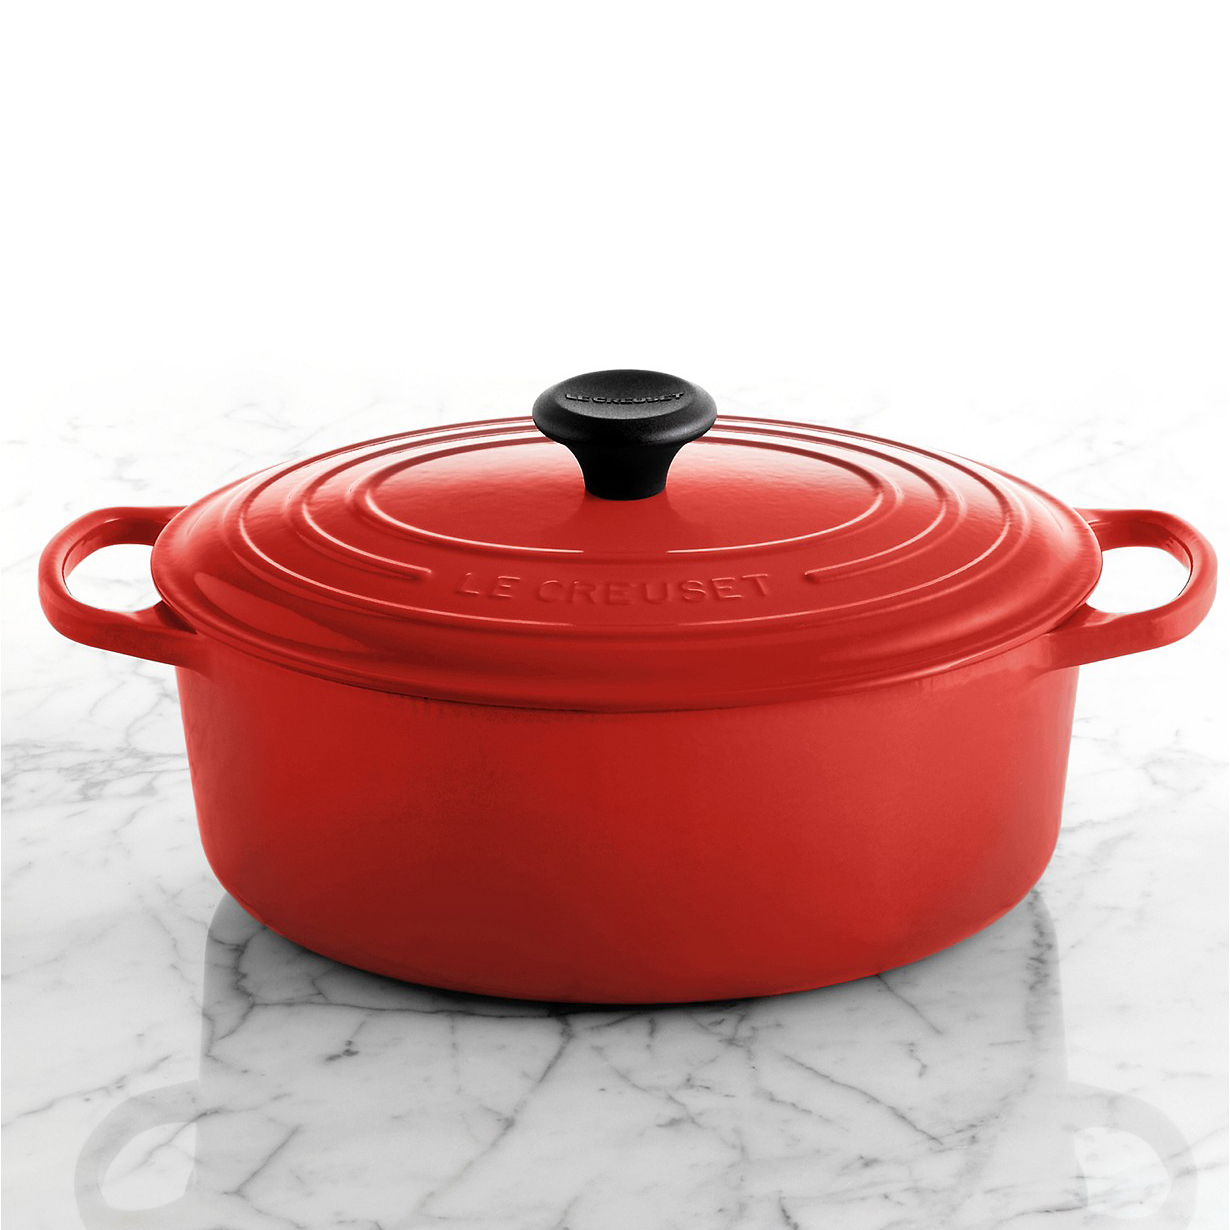 le creuset oval oven